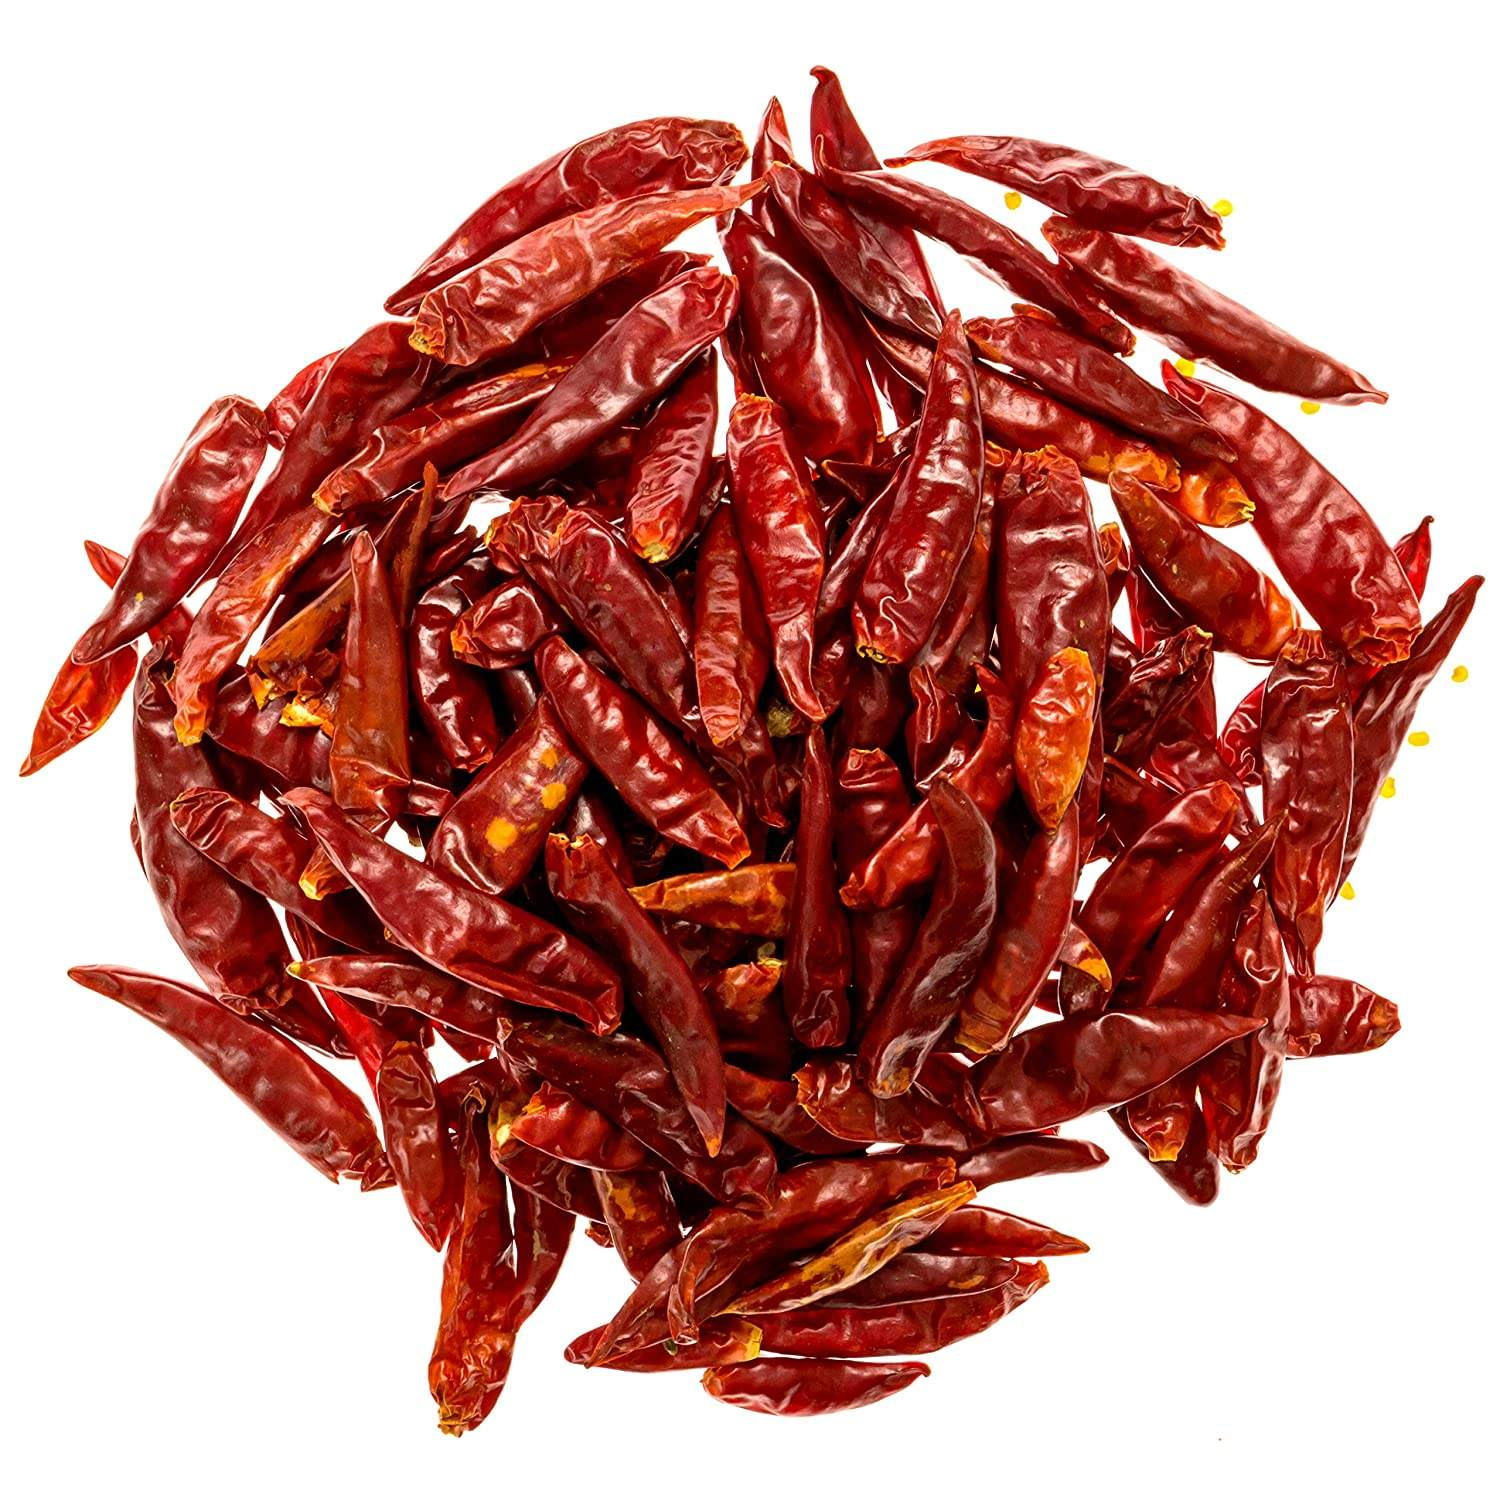 High quality dry red chilies red chili manufacturers Supply high quality natural chili pepper